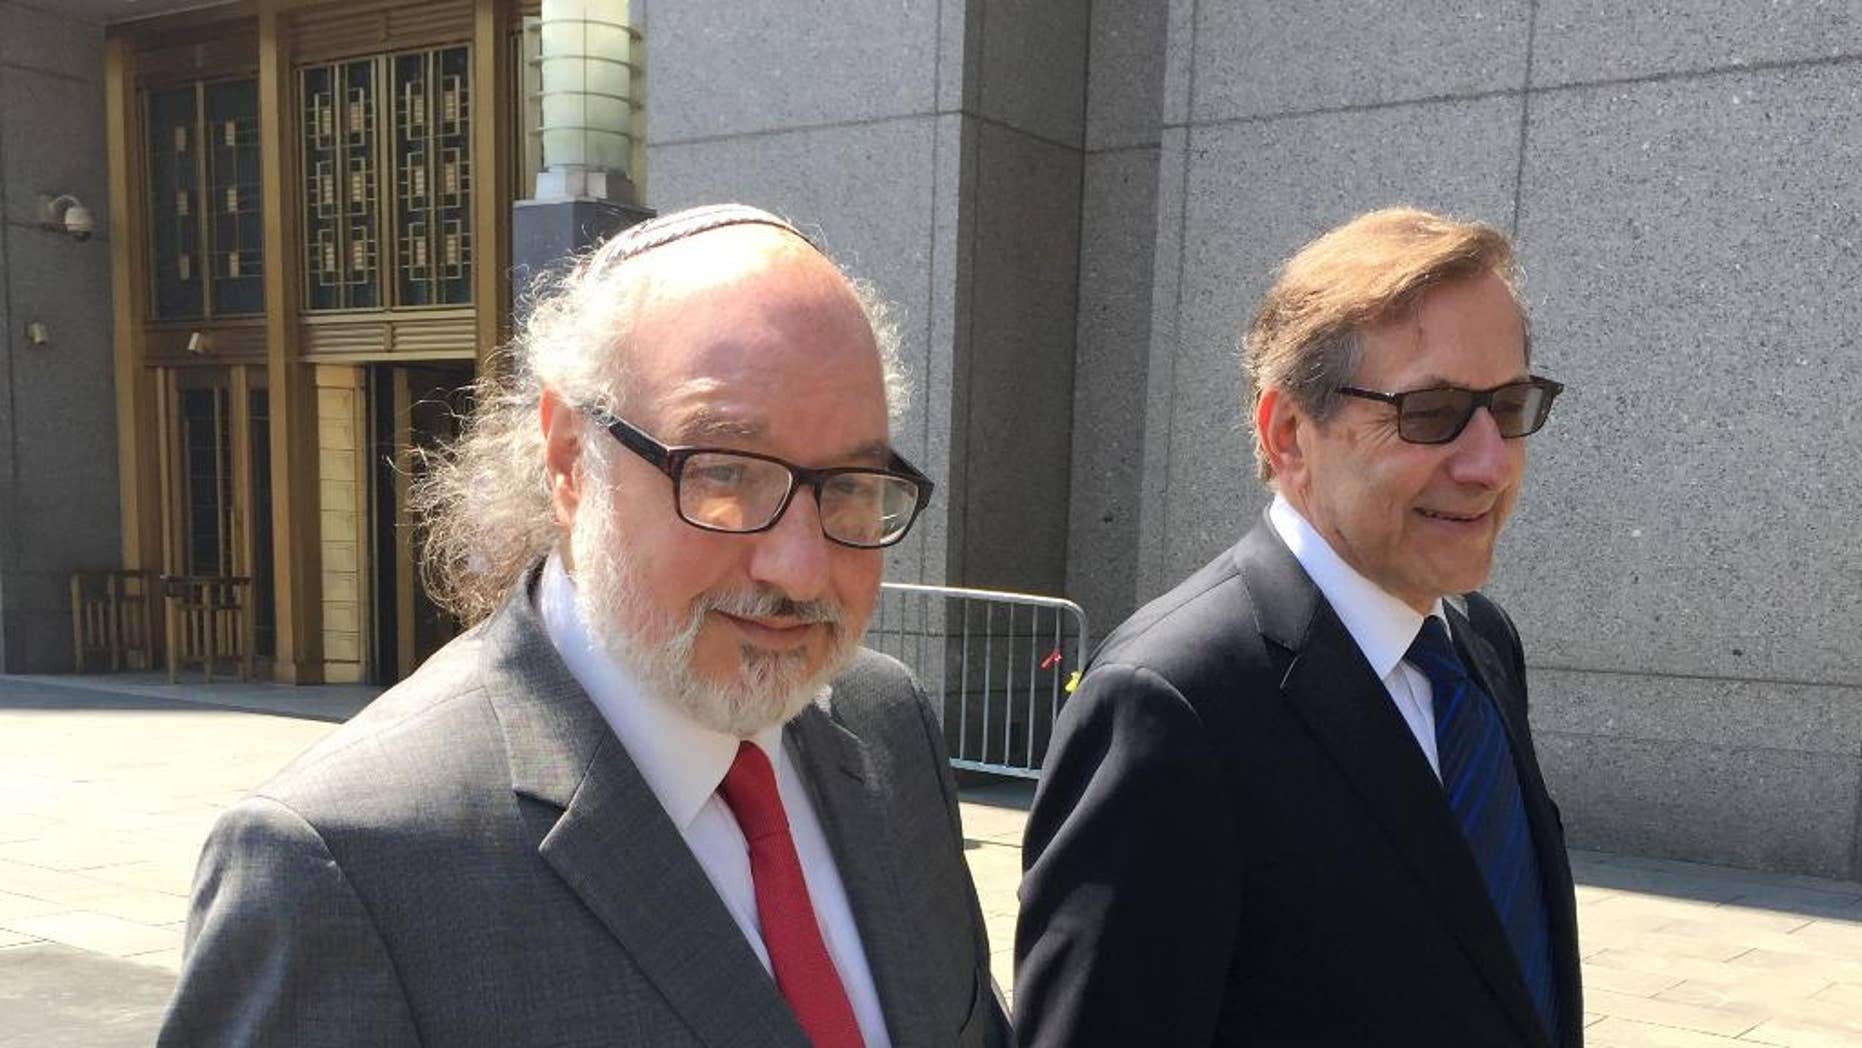 In this July 22, 2016 file photo, convicted spy Jonathan Pollard, left, with his lawyer, Eliot Lauer, leave federal court in New York following a hearing. On Thursday, Aug. 11, U.S. District Judge Katherine Forrest refused to ease the conditions of Pollard's parole. In her written ruling, Forrest said that the Parole Commission did not abuse its discretion when it imposed the restrictions. (AP Photo/Larry Neumeister, File)In this July 22, 2016 file photo, convicted spy Jonathan Pollard, left, with his lawyer, Eliot Lauer, leave federal court in New York following a hearing.